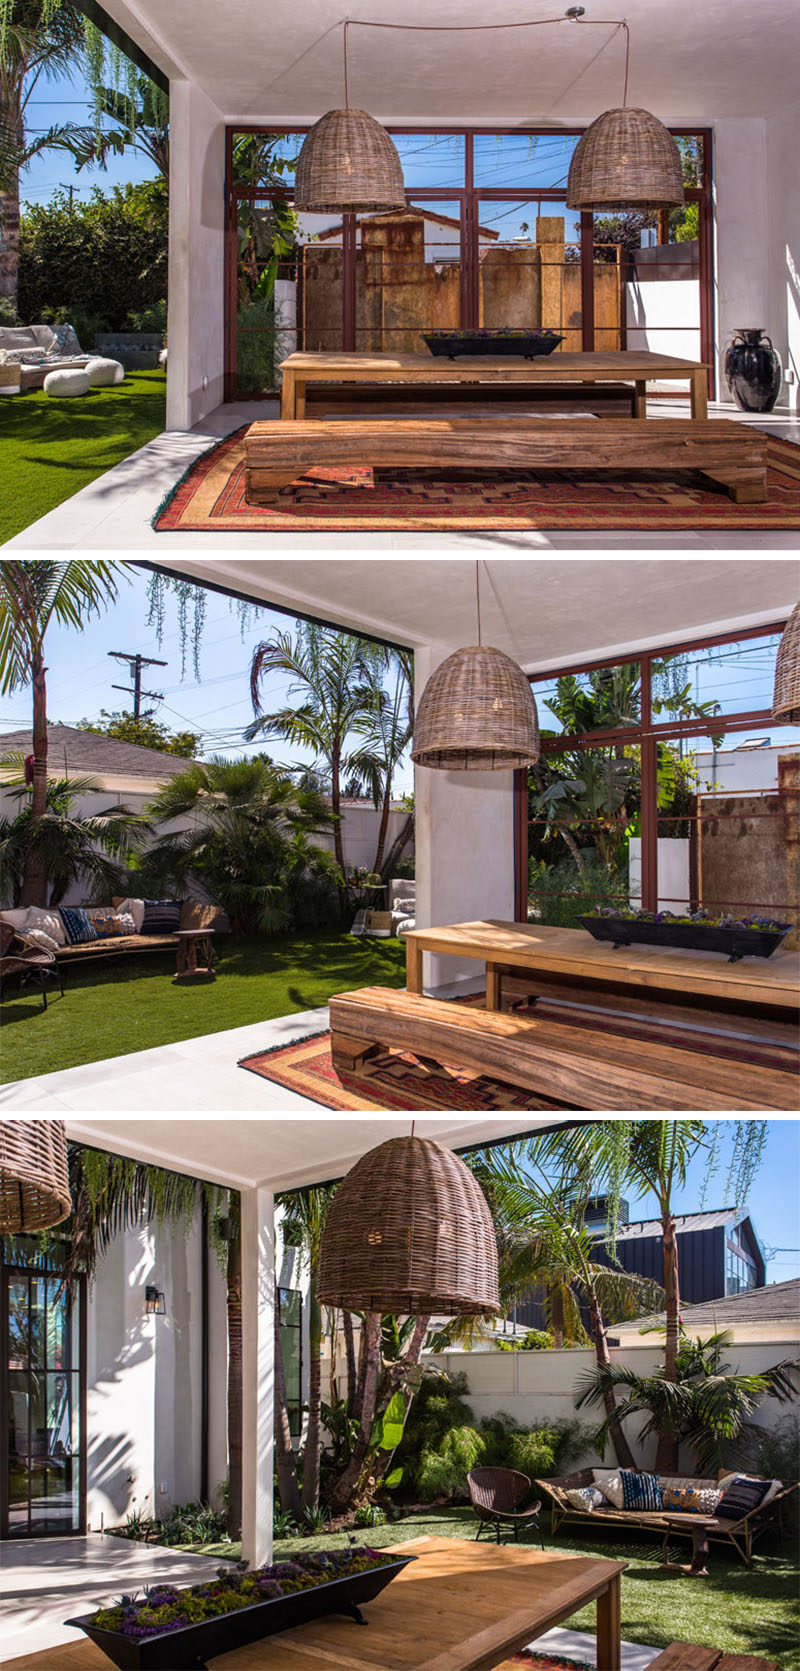 Two large pendant lights hang above a wooden dining table with benches as seats, to create a covered outdoor dining room.